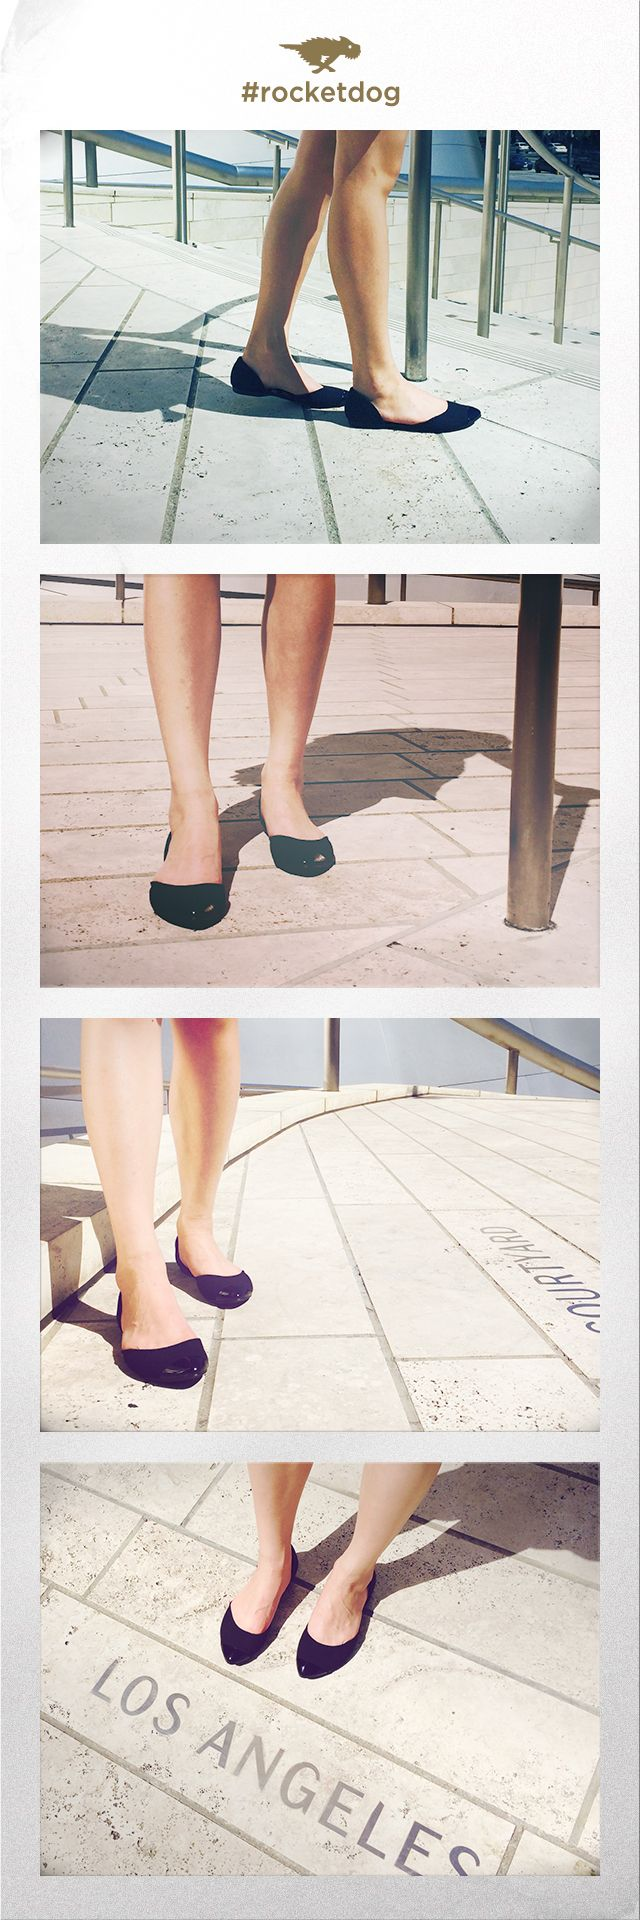 Seeing the sights in Los Angeles with Rocket Dog Cyprus Canvas flats in black.